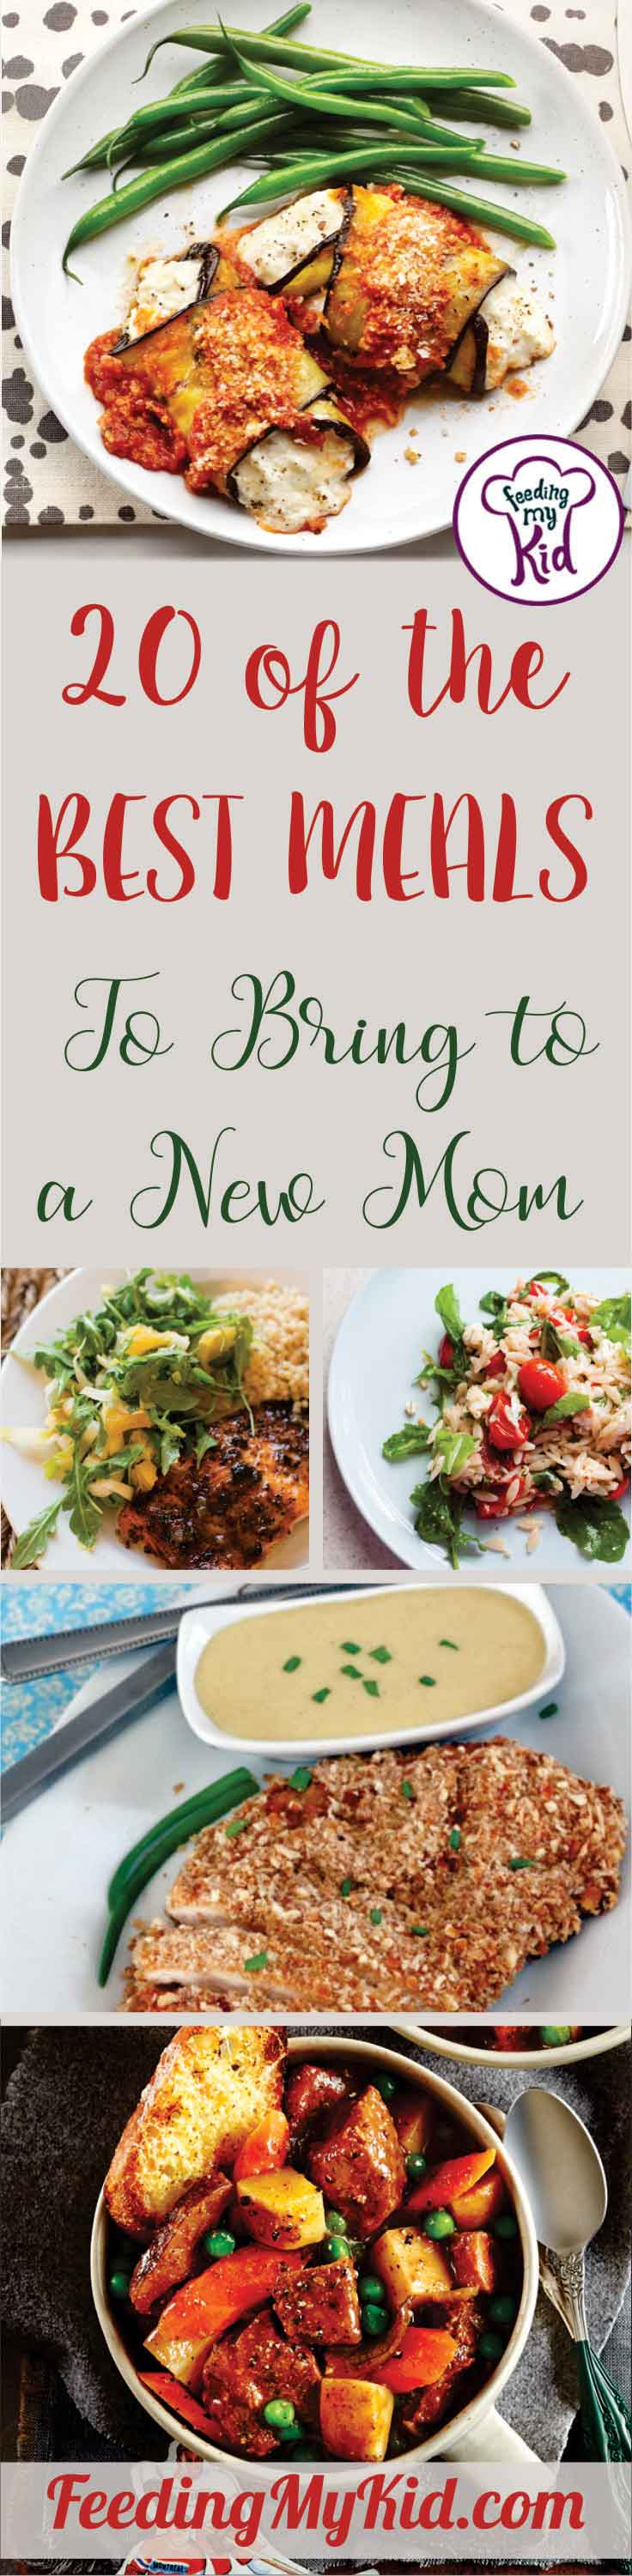 If you know someone who just recently became a new mom, why not try making a homemade meal for her? She'll love these easy meals for new moms